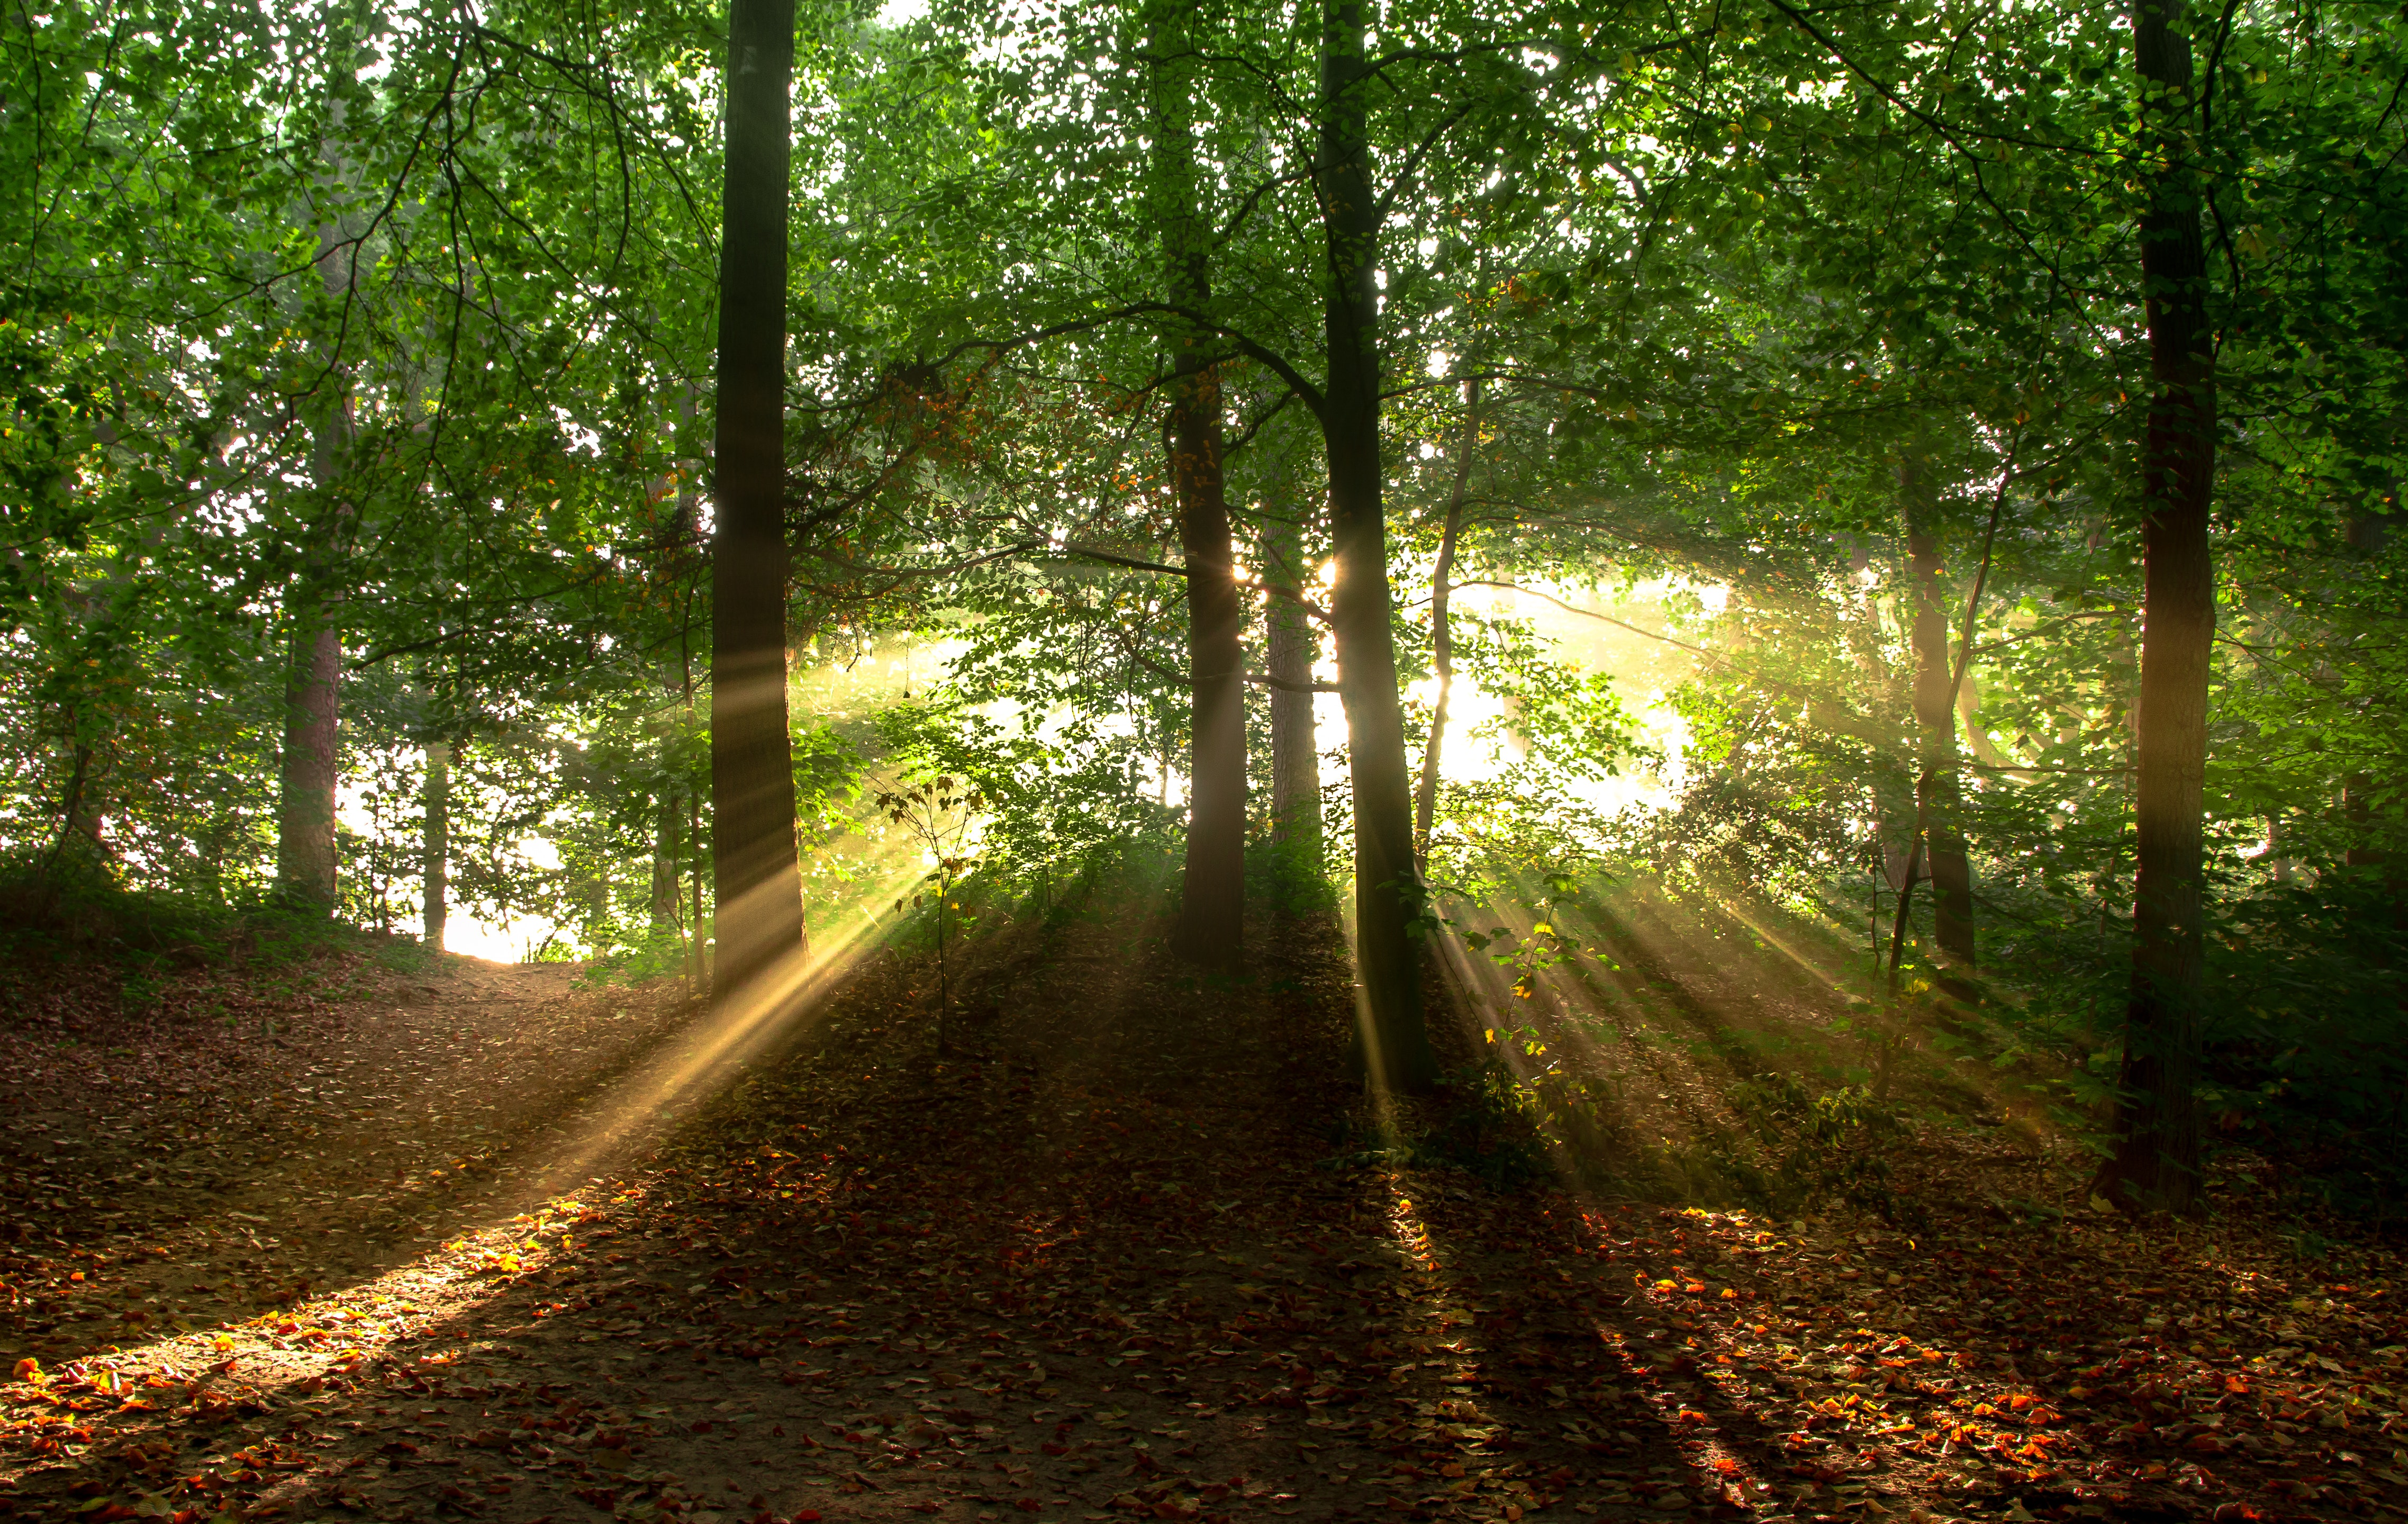 forest-landscape-leafs-11435